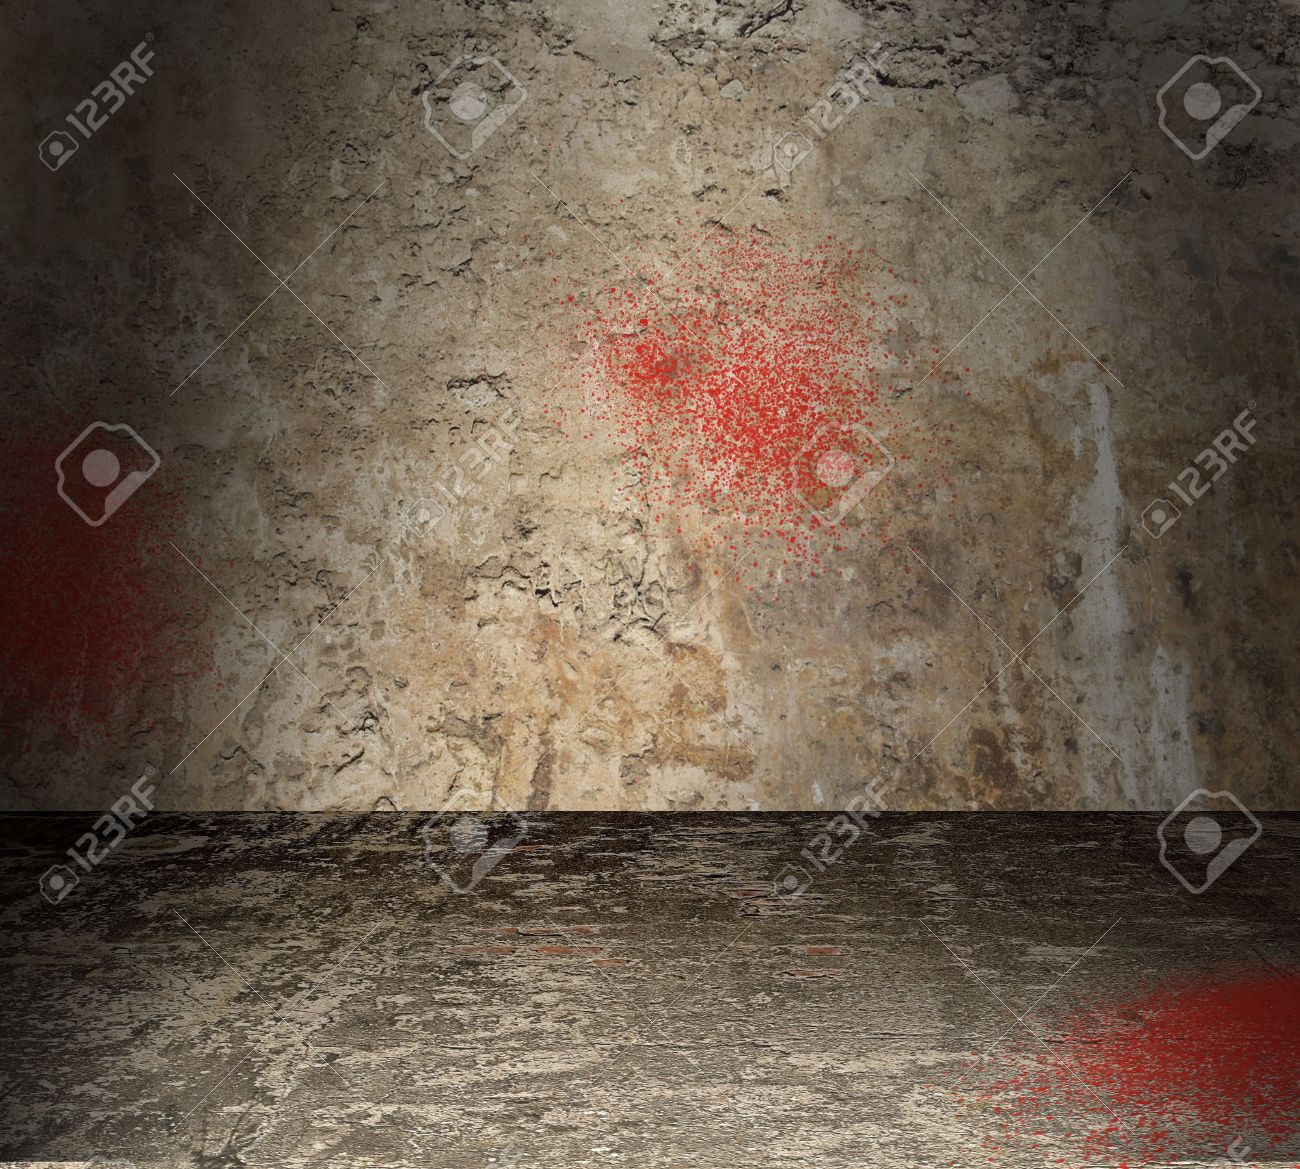 Torture chamber with bloodstained walls Stock Photo - 12726385